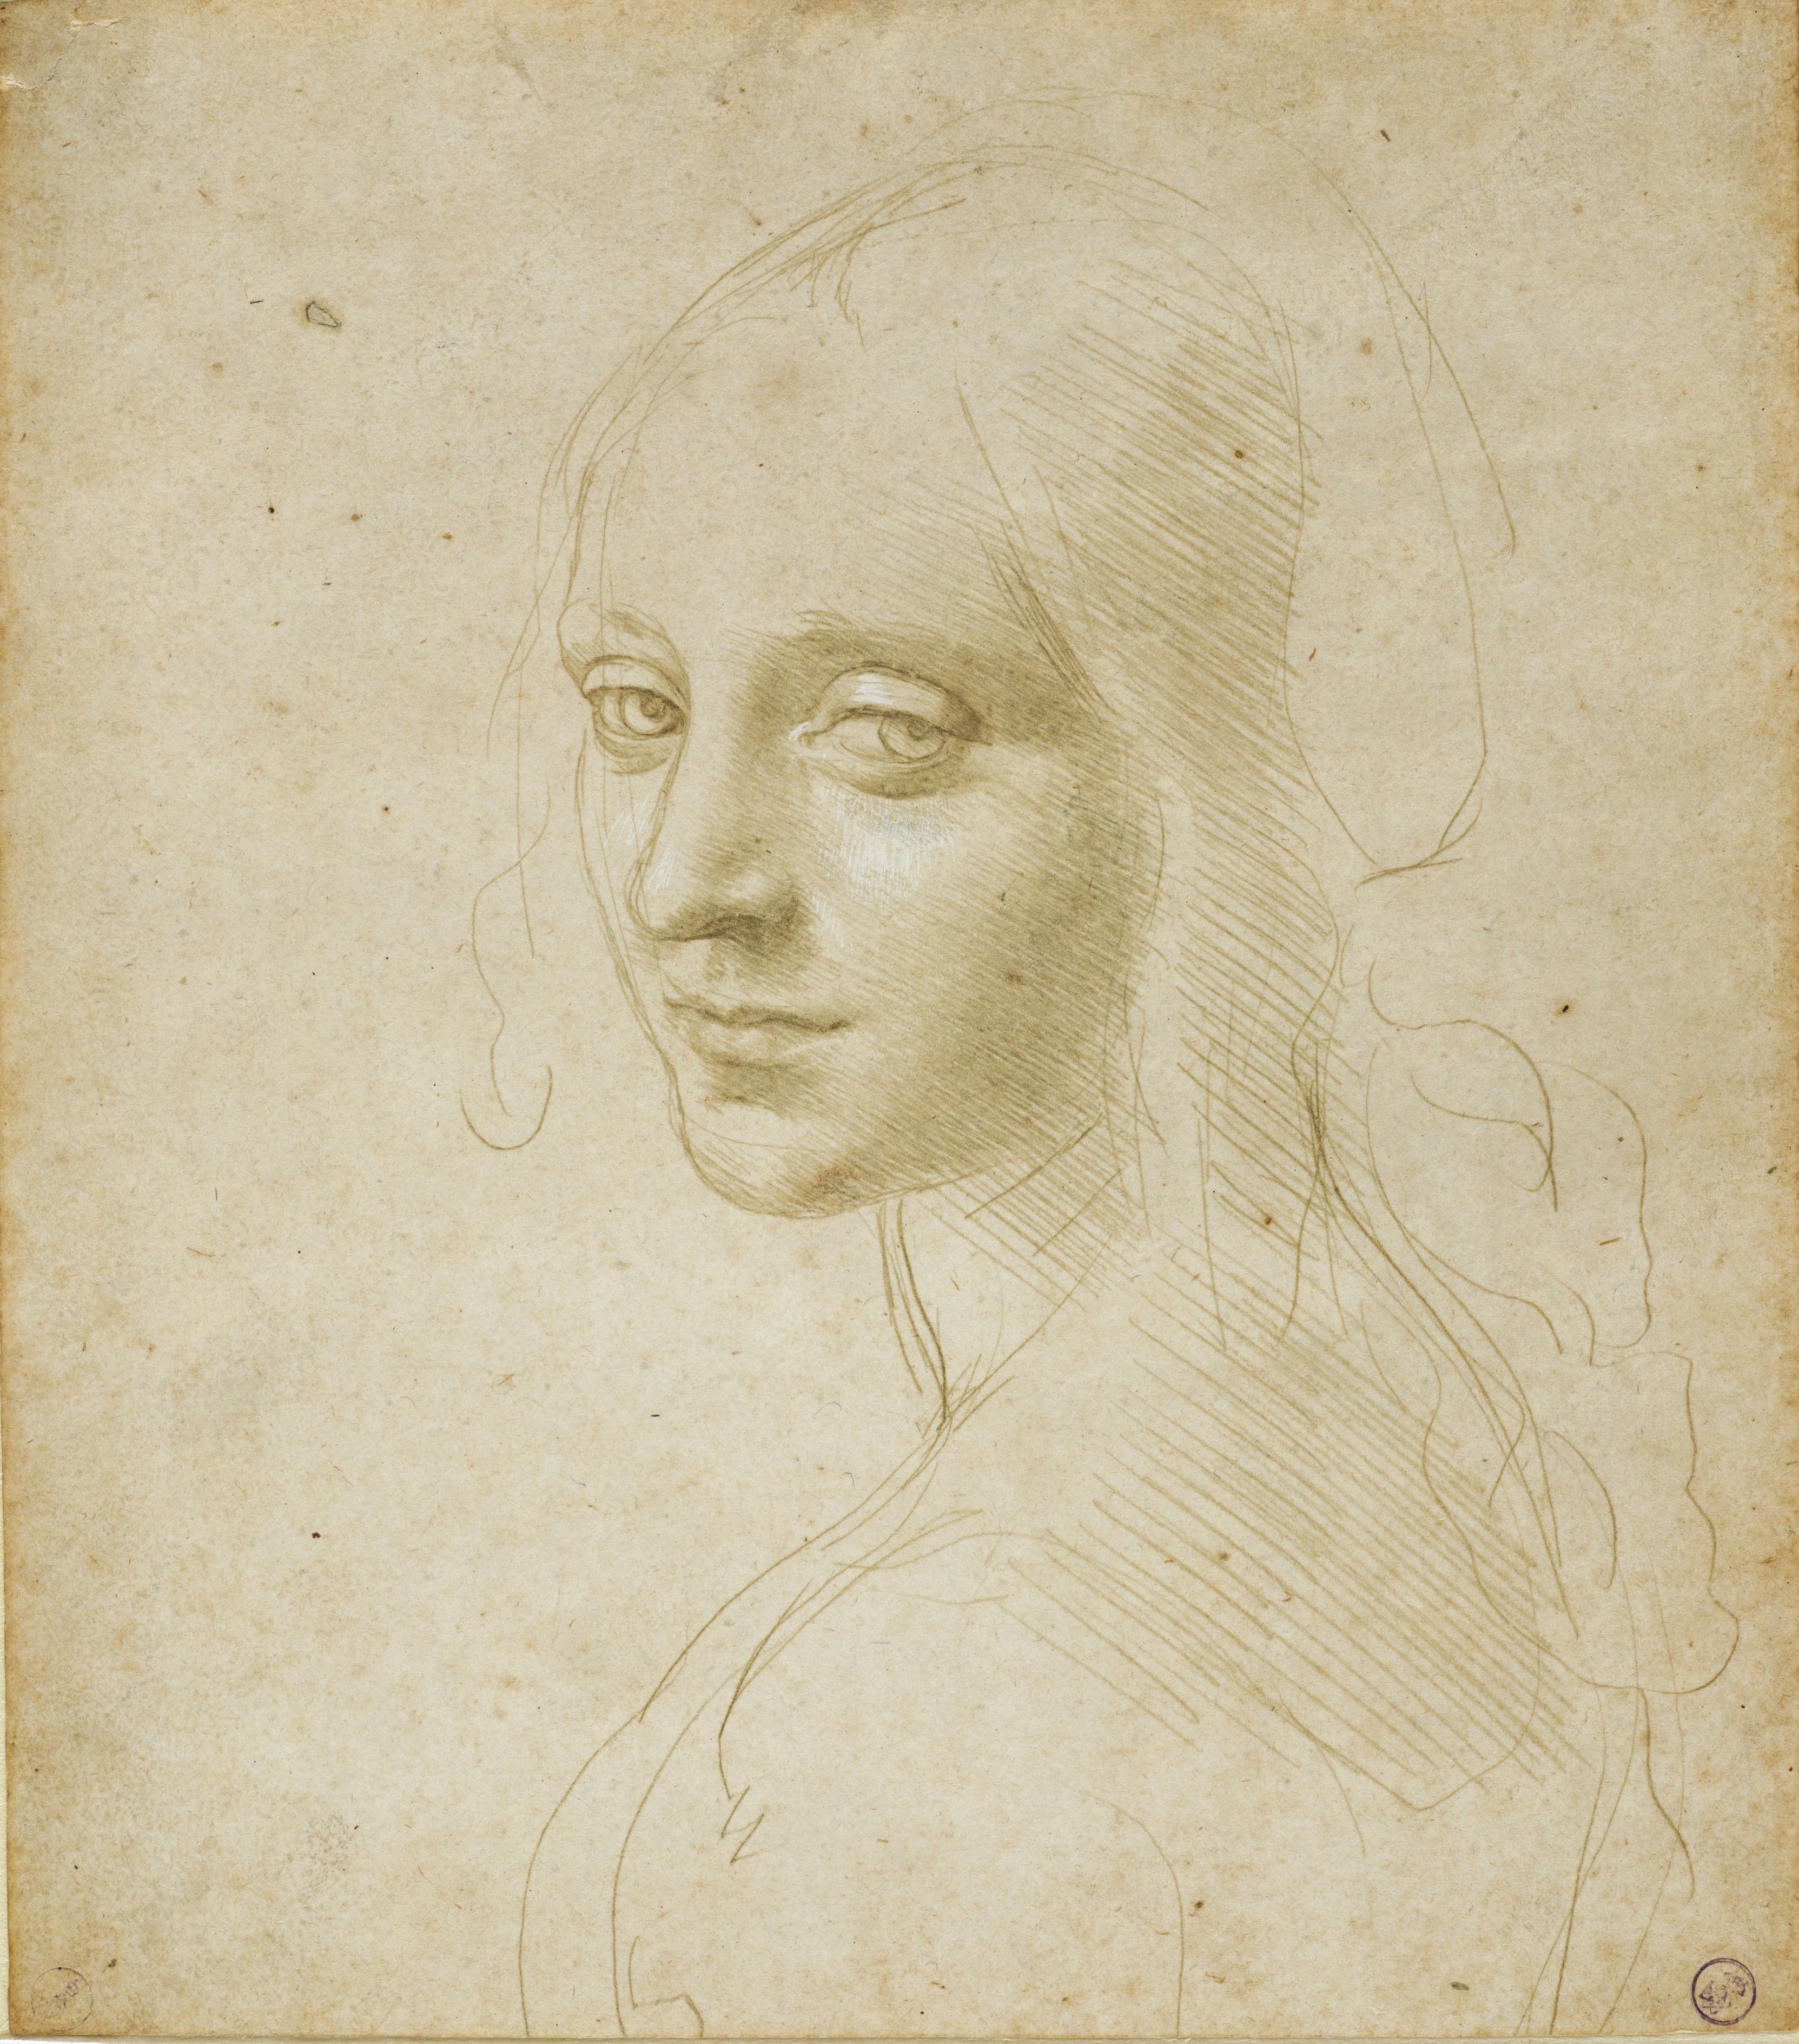 Leonardo da Vinci and the Idea of Beauty